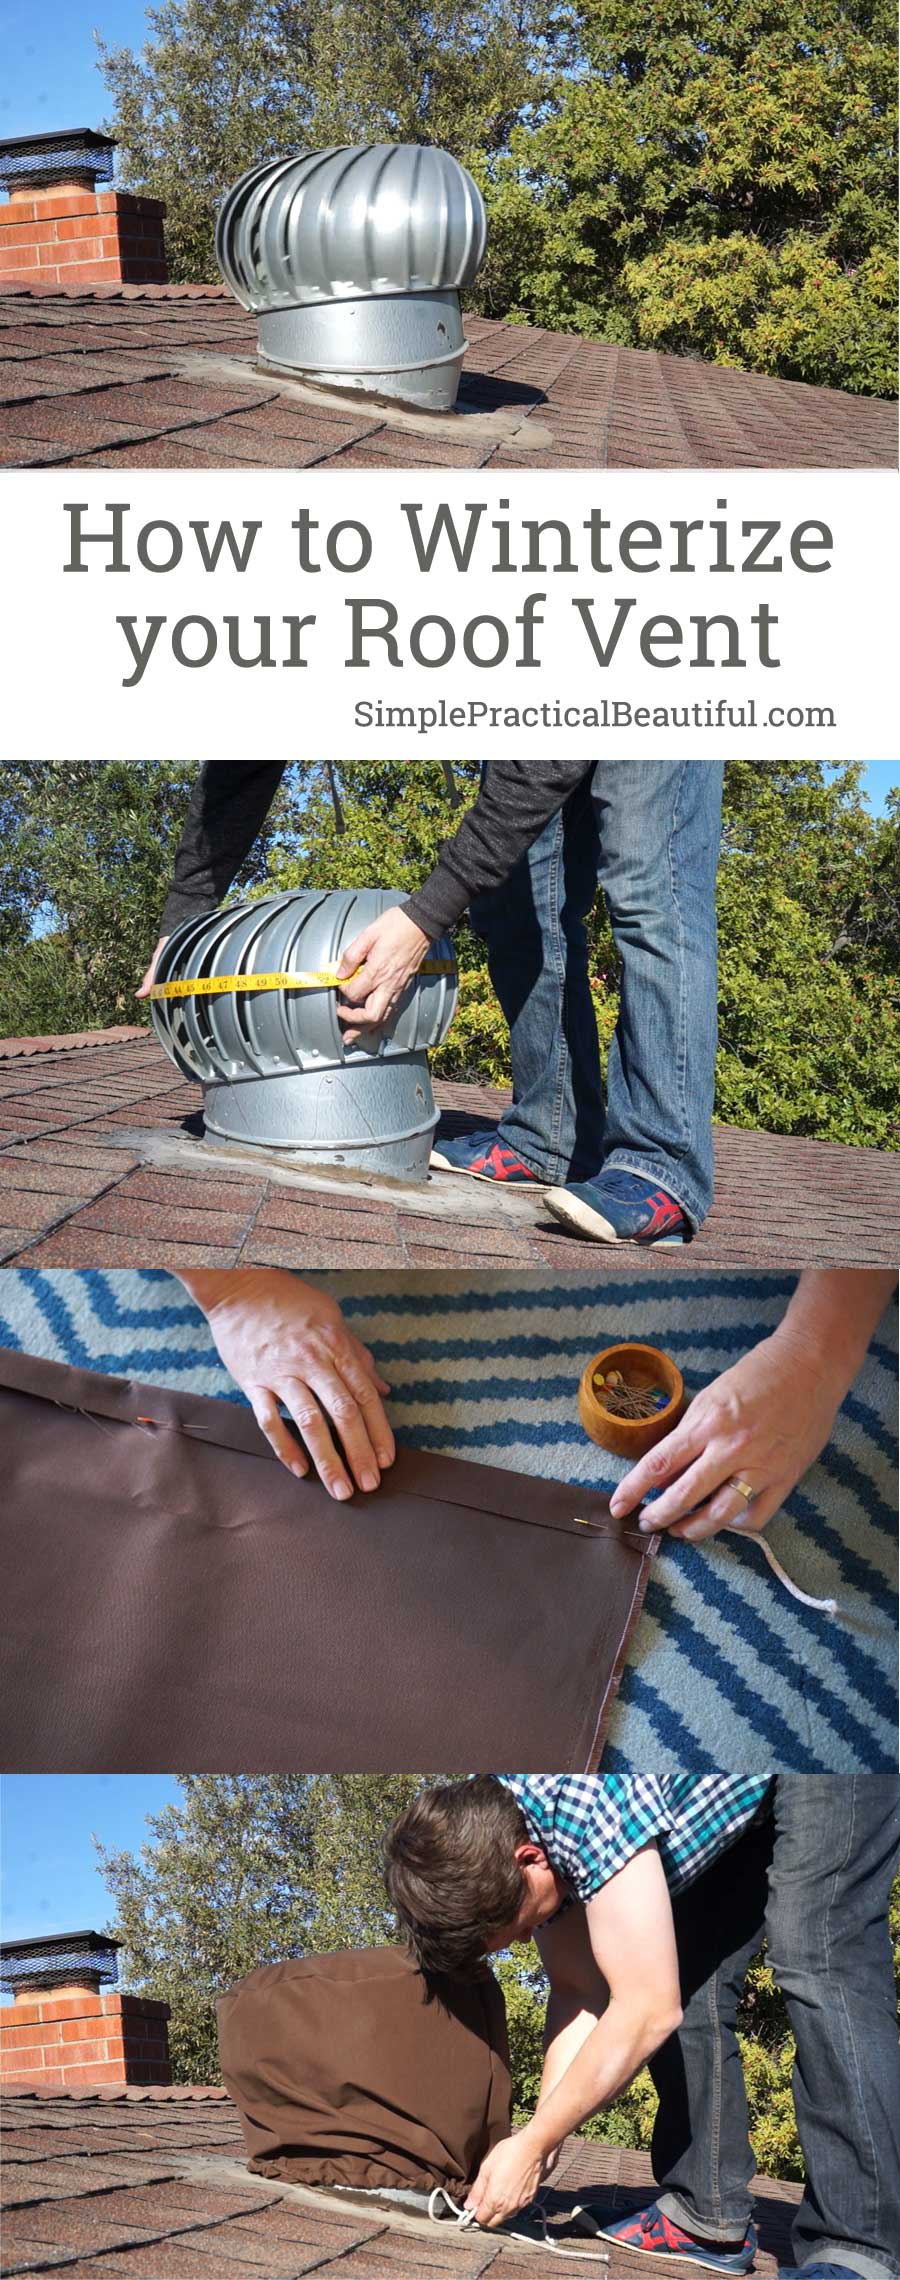 Winterize your roof by making a DIY roof vent cover for your whirlybird vent | How to make a roof vent cover video tutorial